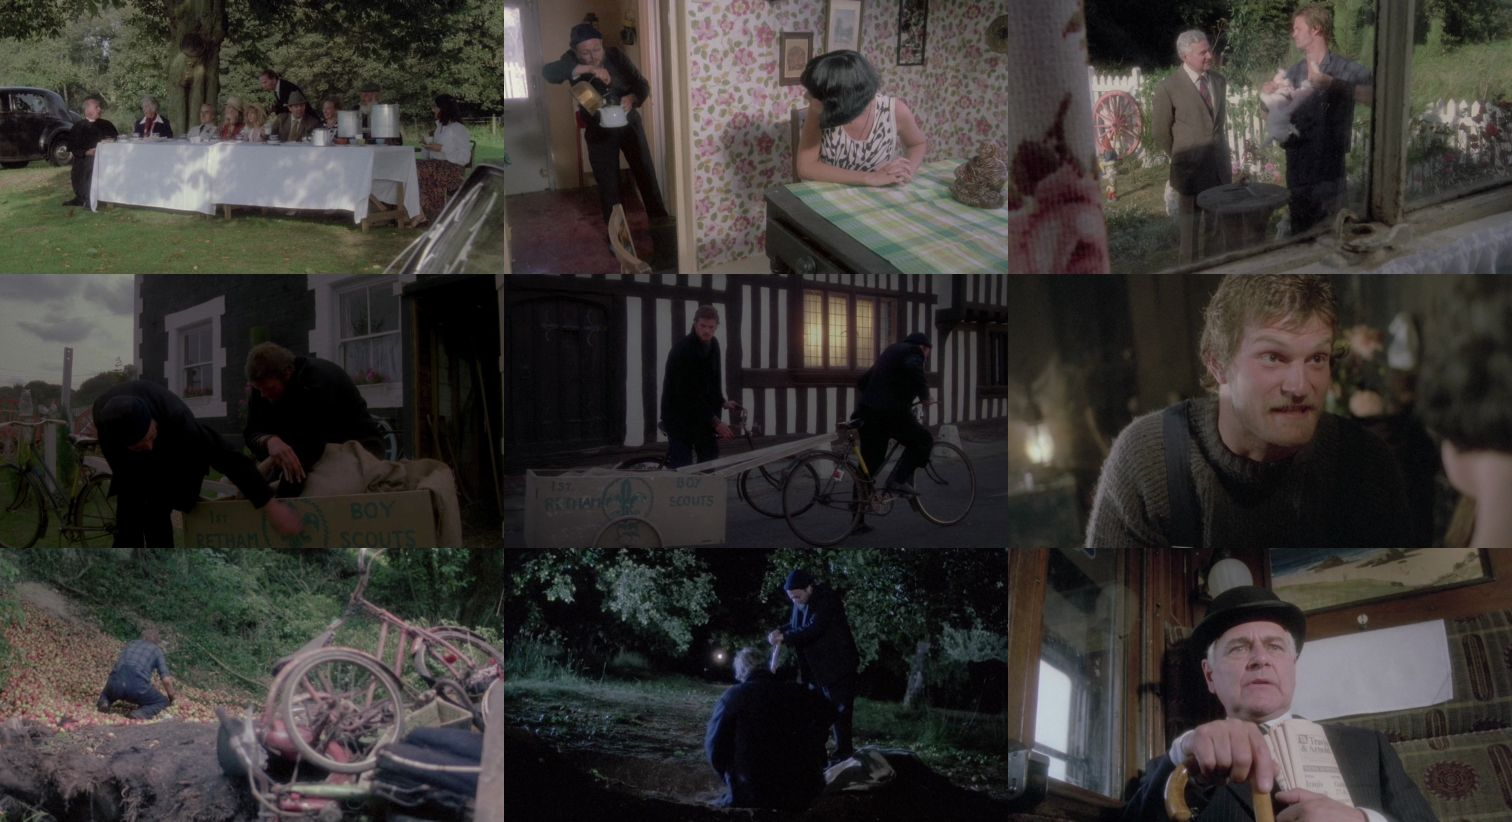 Download The Orchard End Murder 1981 720p BluRay x264-SPOOKS Torrent